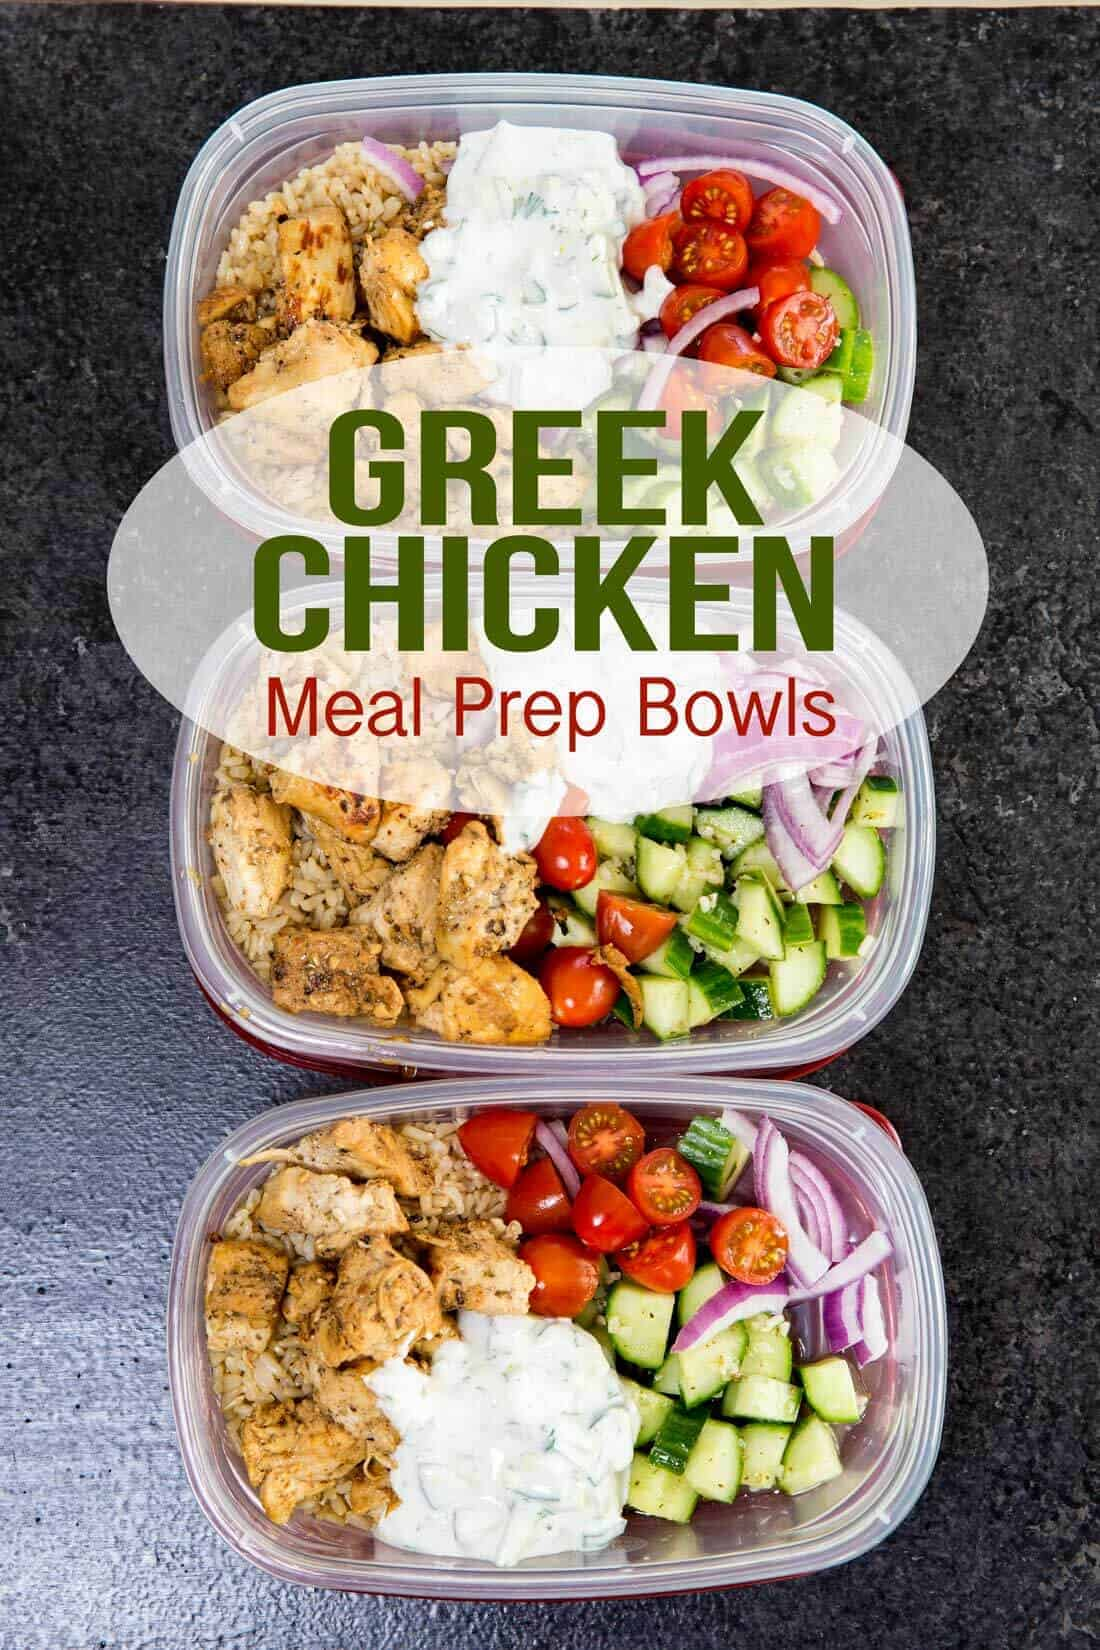 Greek Chicken Meal Prep Bowls by Eazy Peazy Mealz | Easy and Delicious Make Ahead Meals